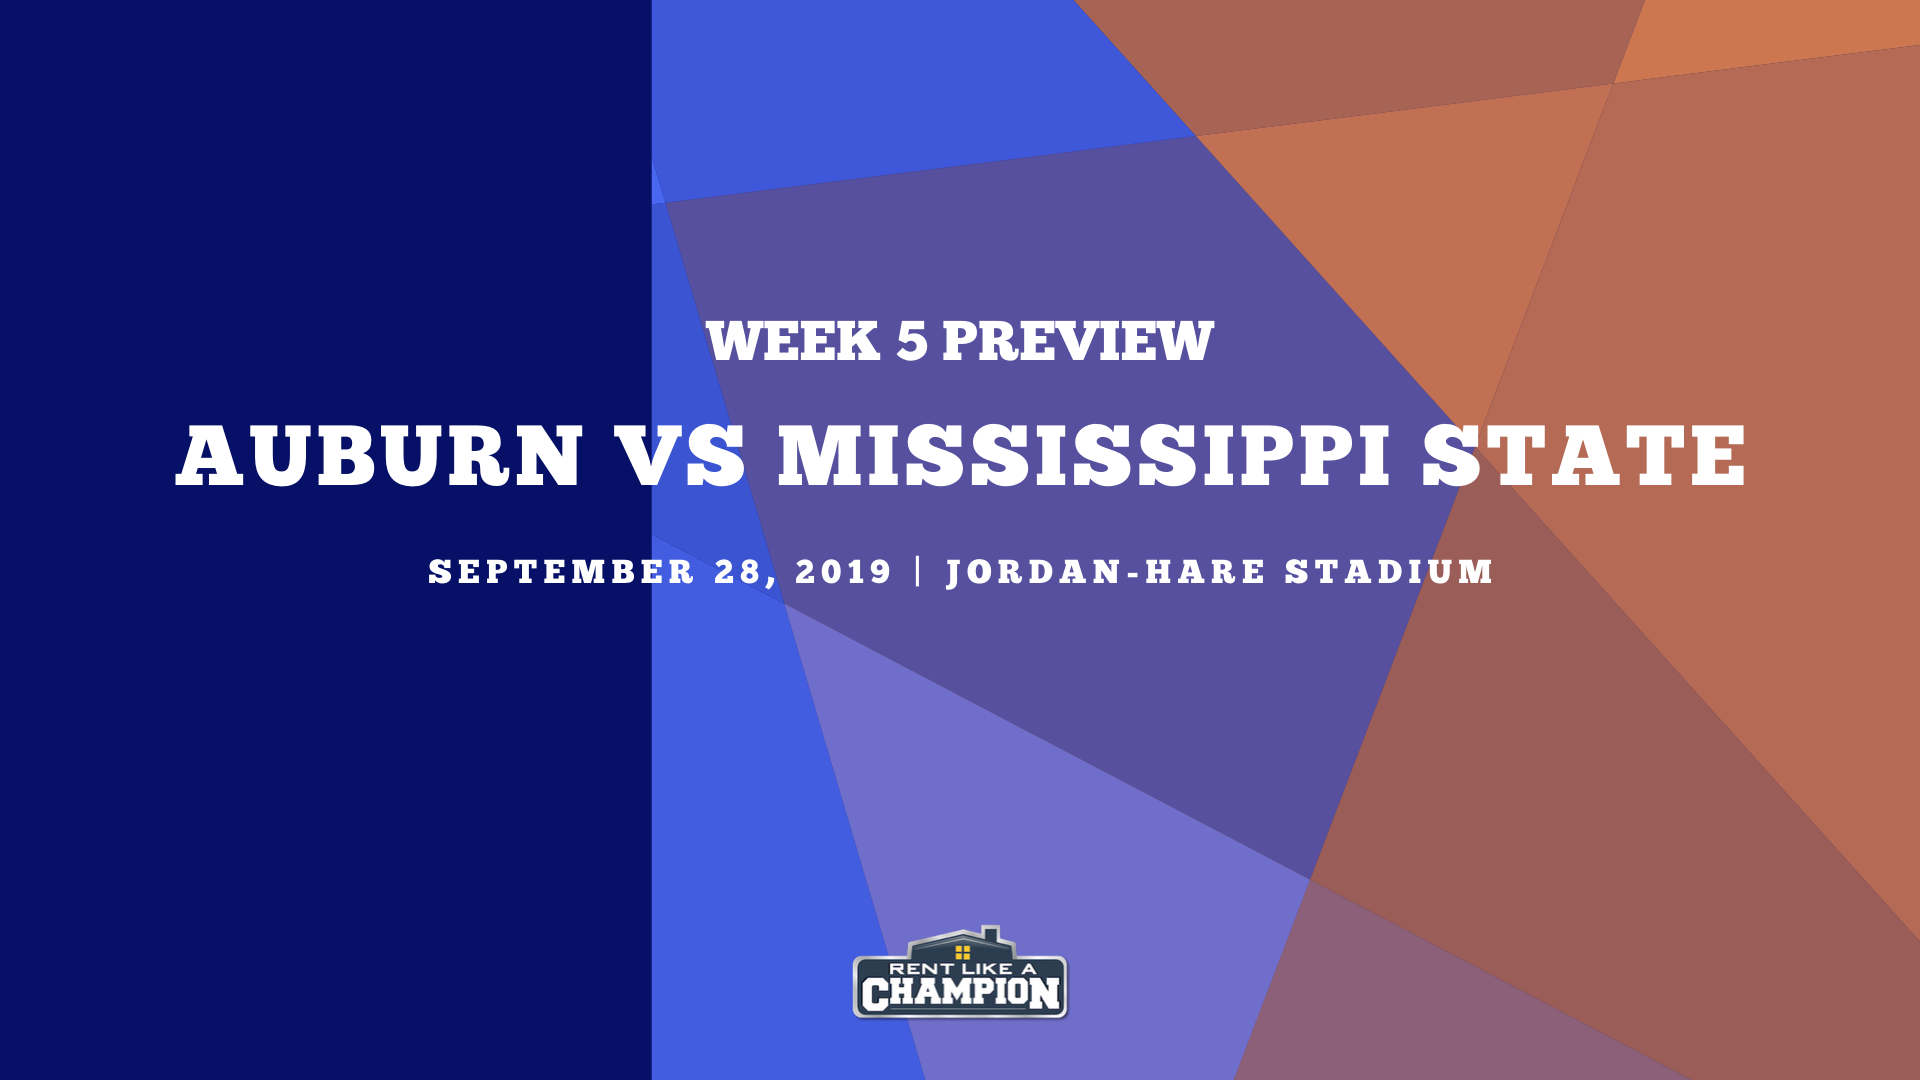 Auburn Game Preview Template (4)